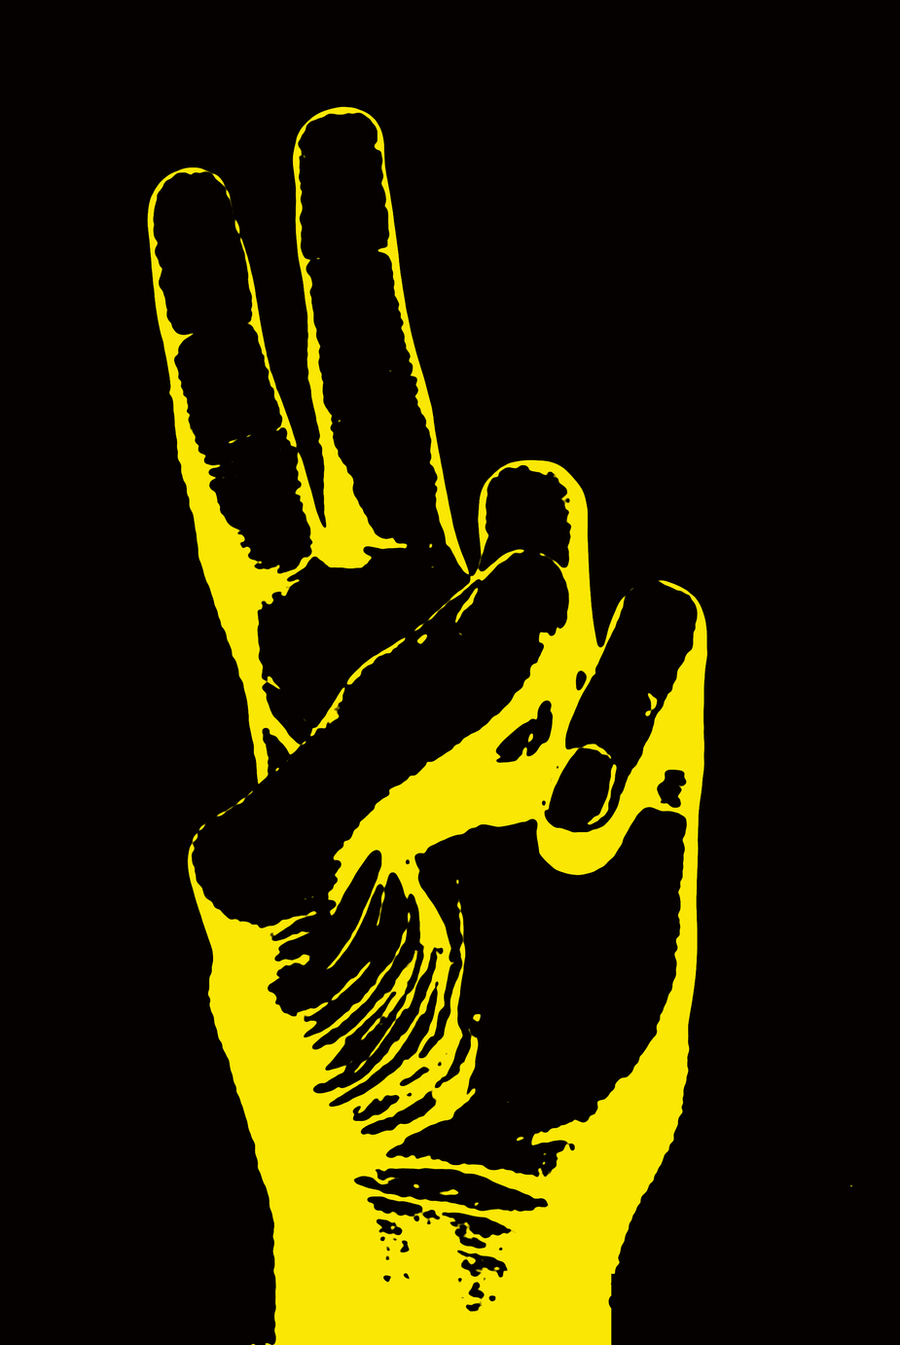 black and yellow by doodlebuglover10 | Publish with Glogster!